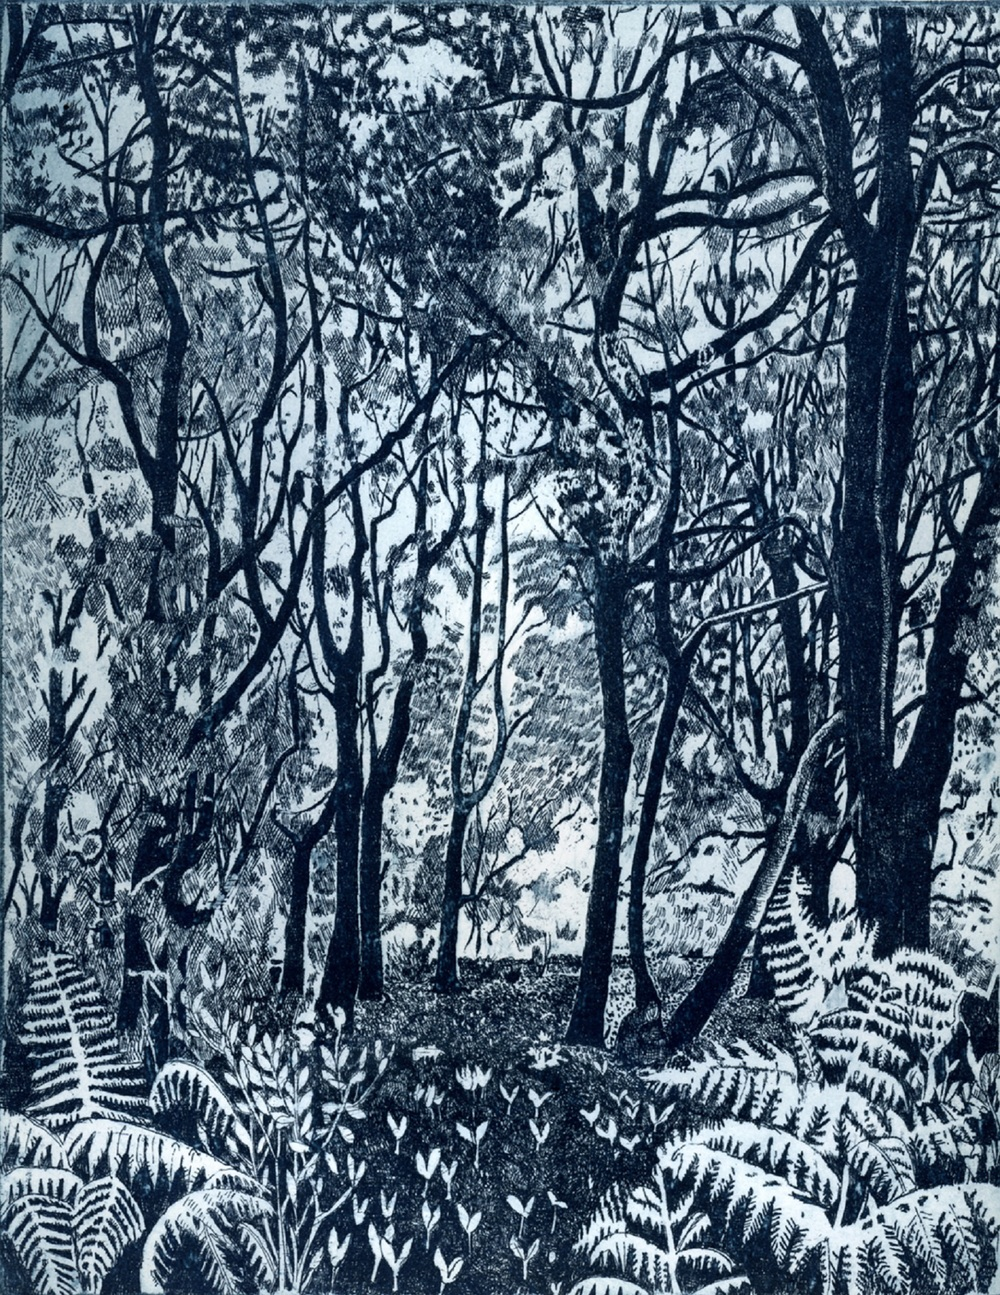 Bracken Edge   etching